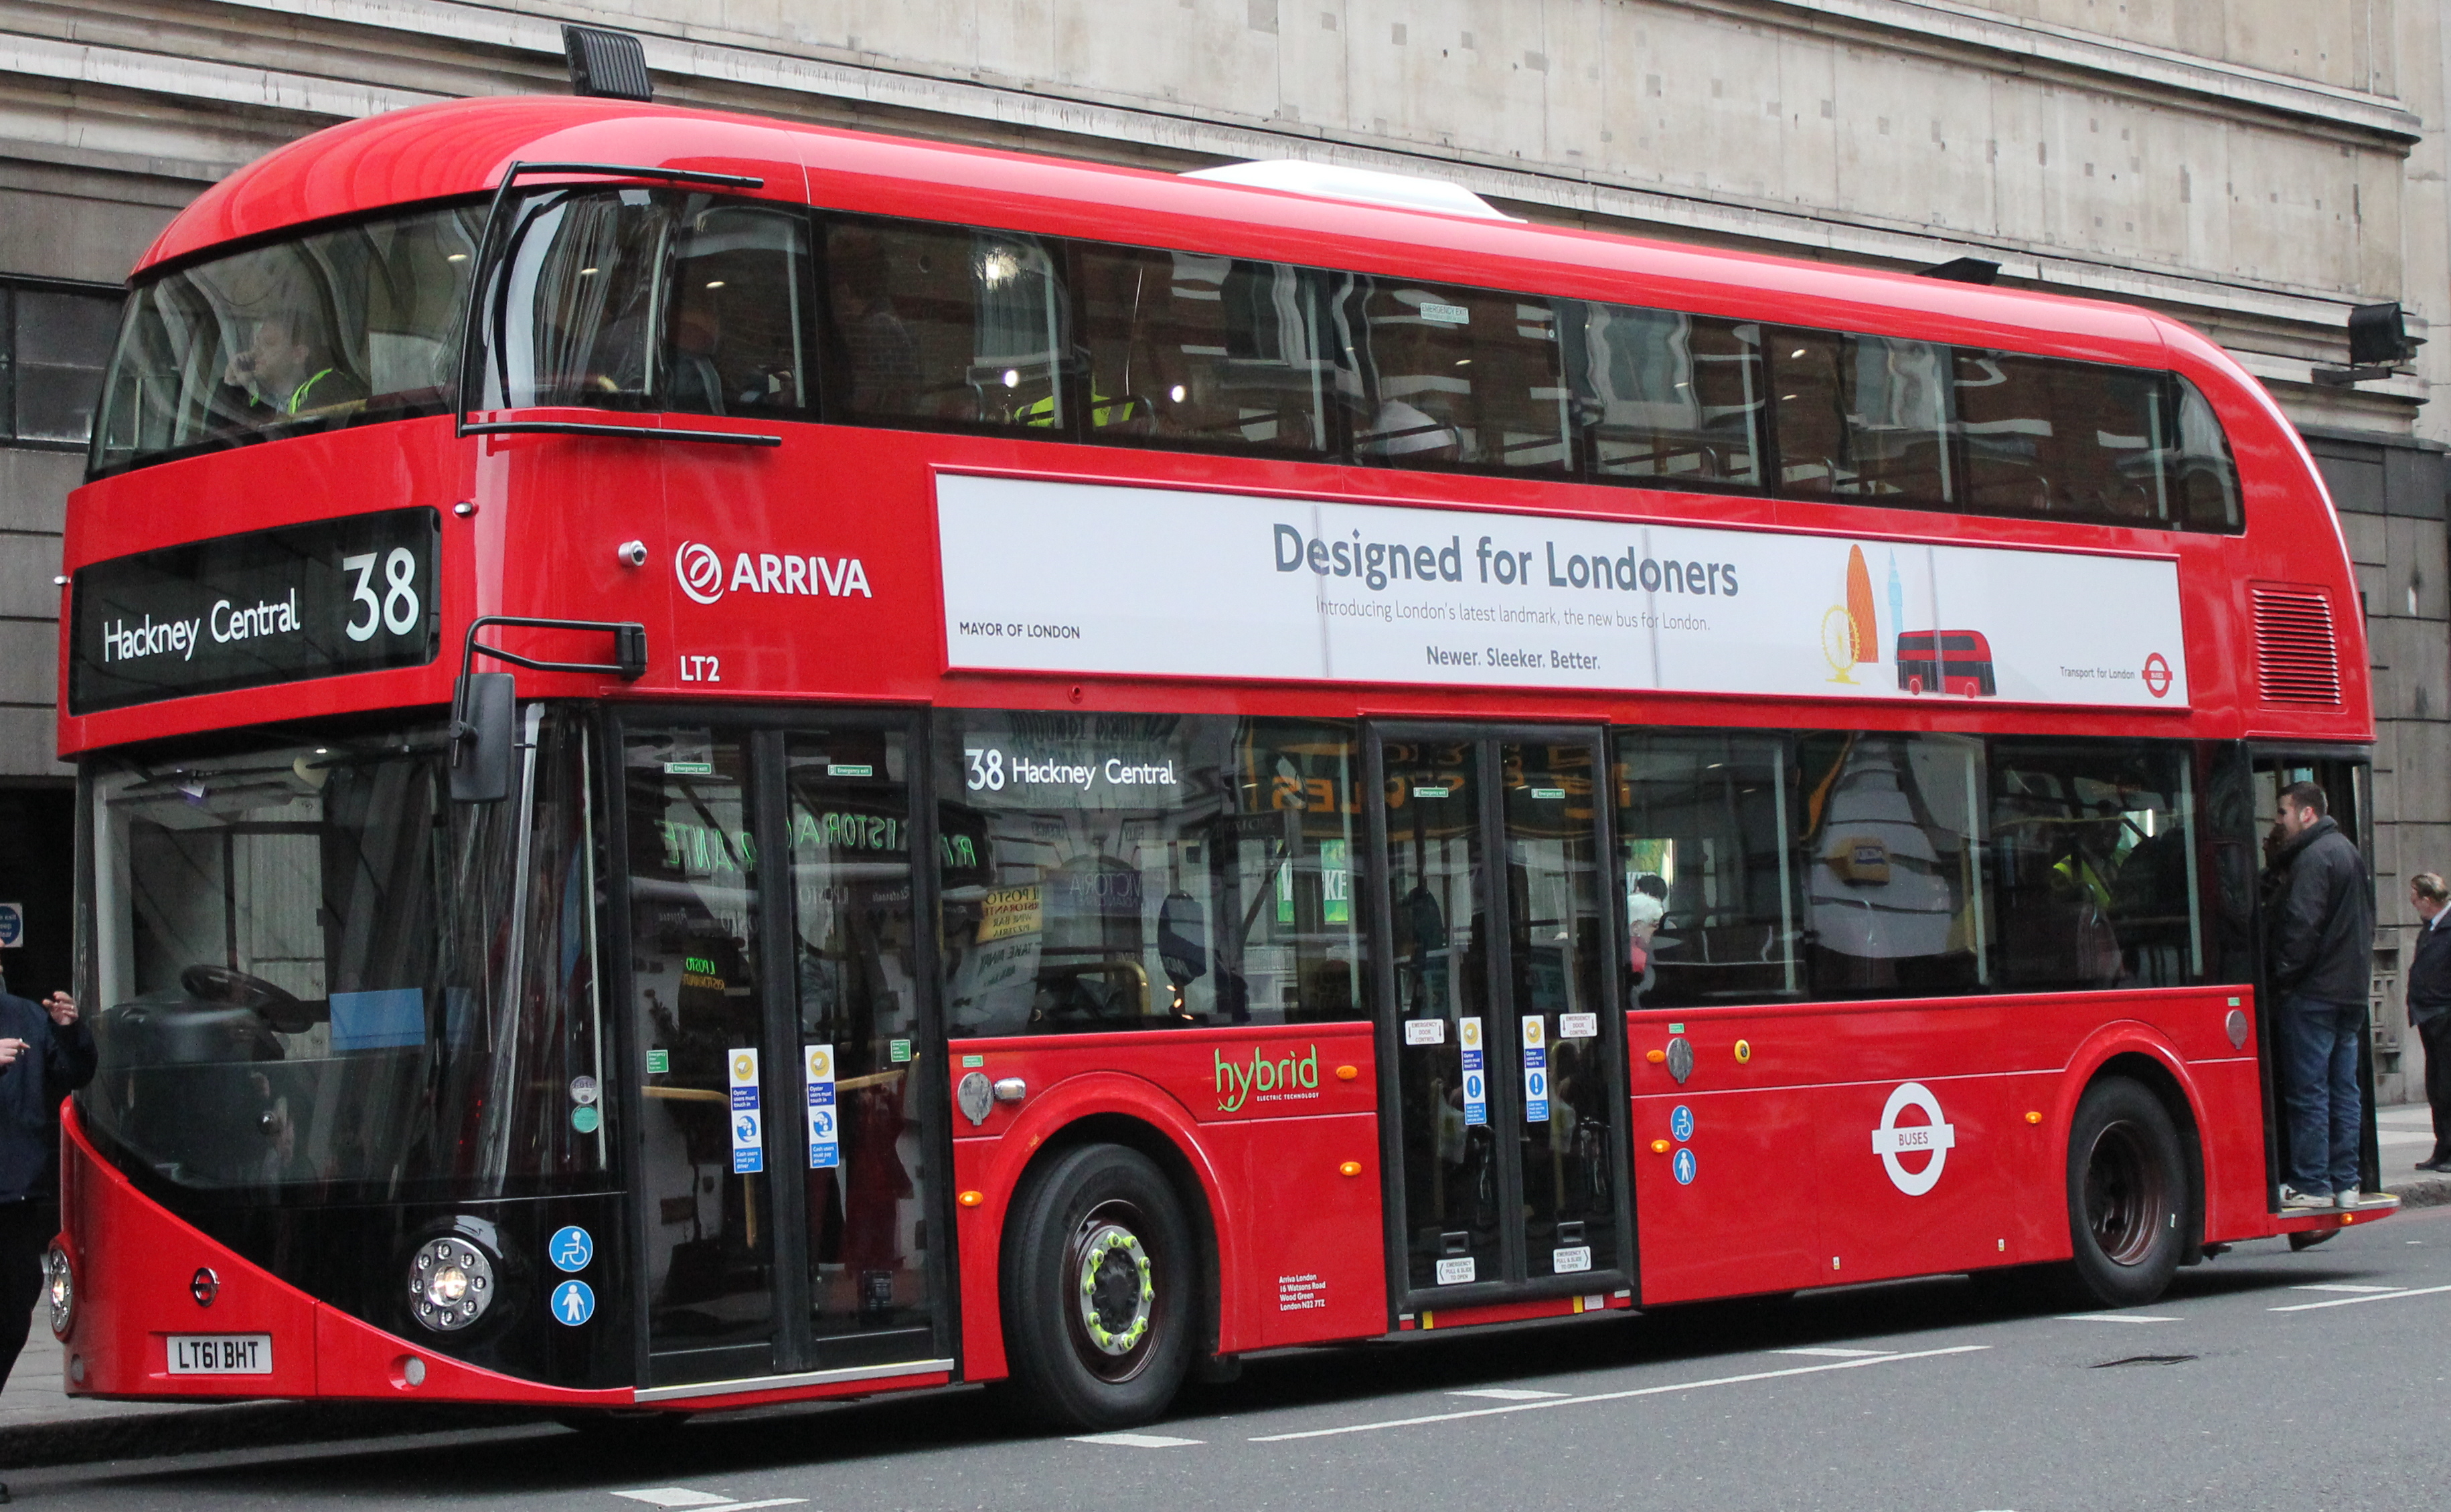 File:Arriva London bus LT2 (LT61 BHT) 2011 New Bus for ...